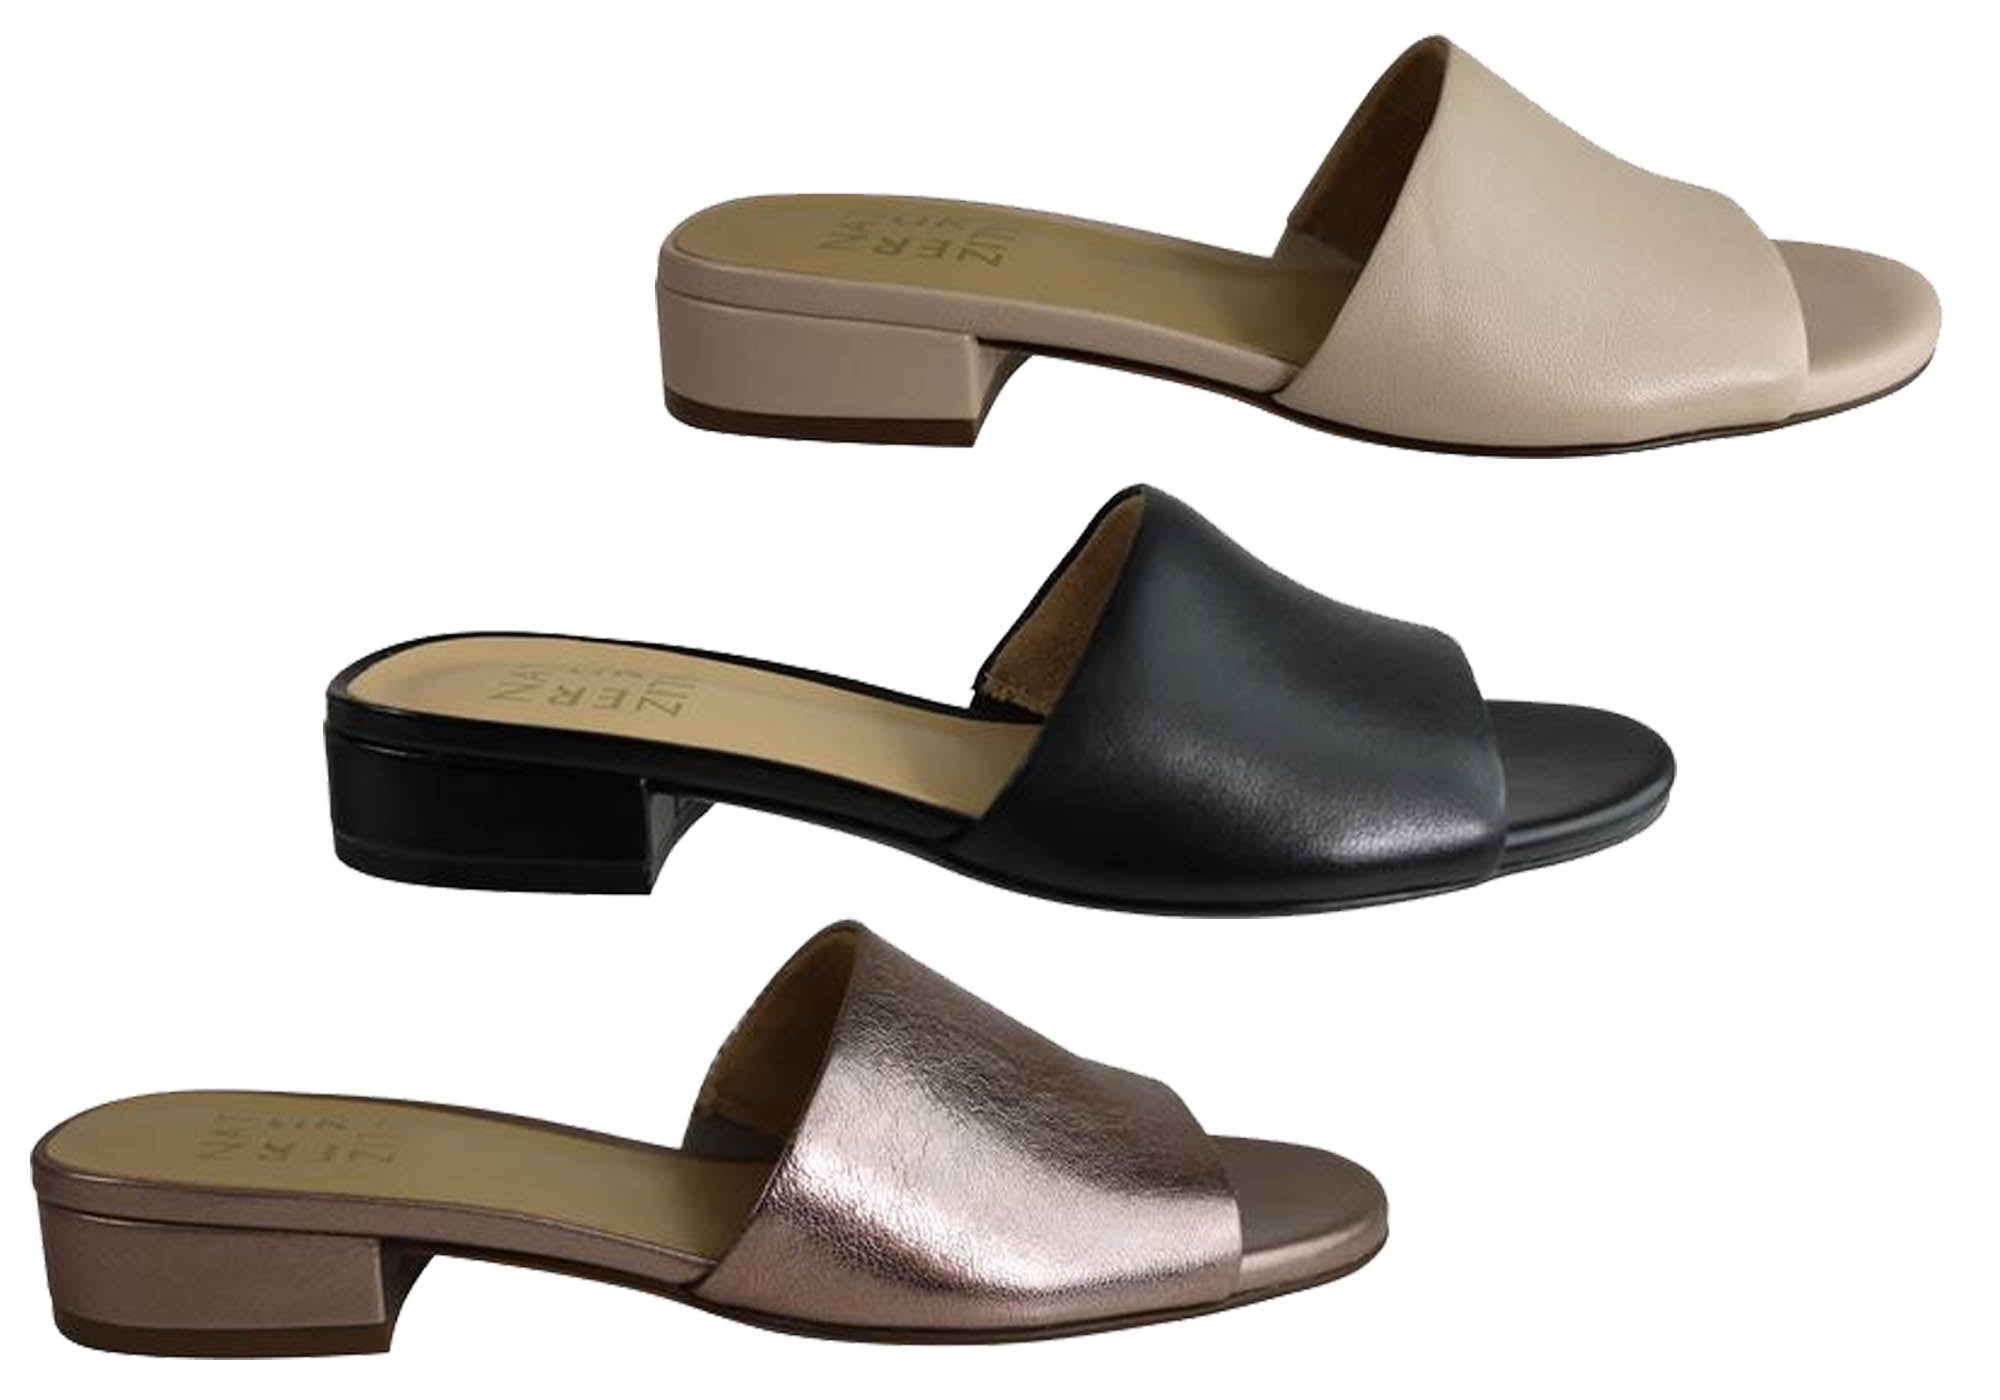 Details about Brand New Naturalizer Mason Womens Leather Low Heel Slip On Sandals Slides